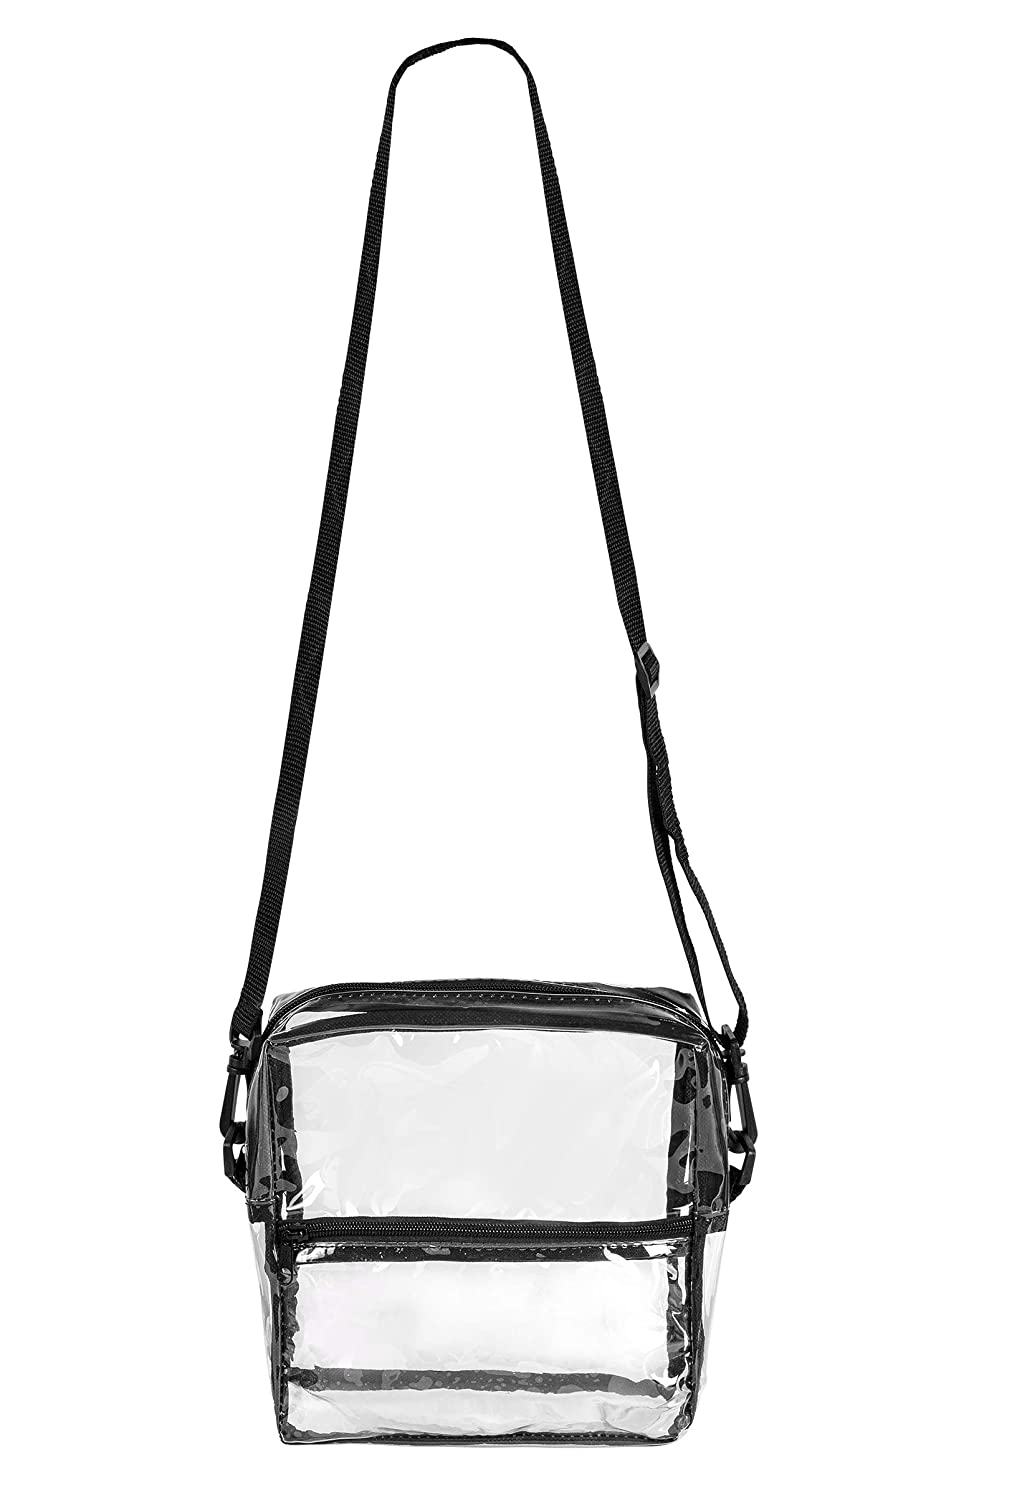 Bags for Less Clear Cross Body Messenger Tote Shoulder Bag Stadium Approved with Long Adjustable Strap